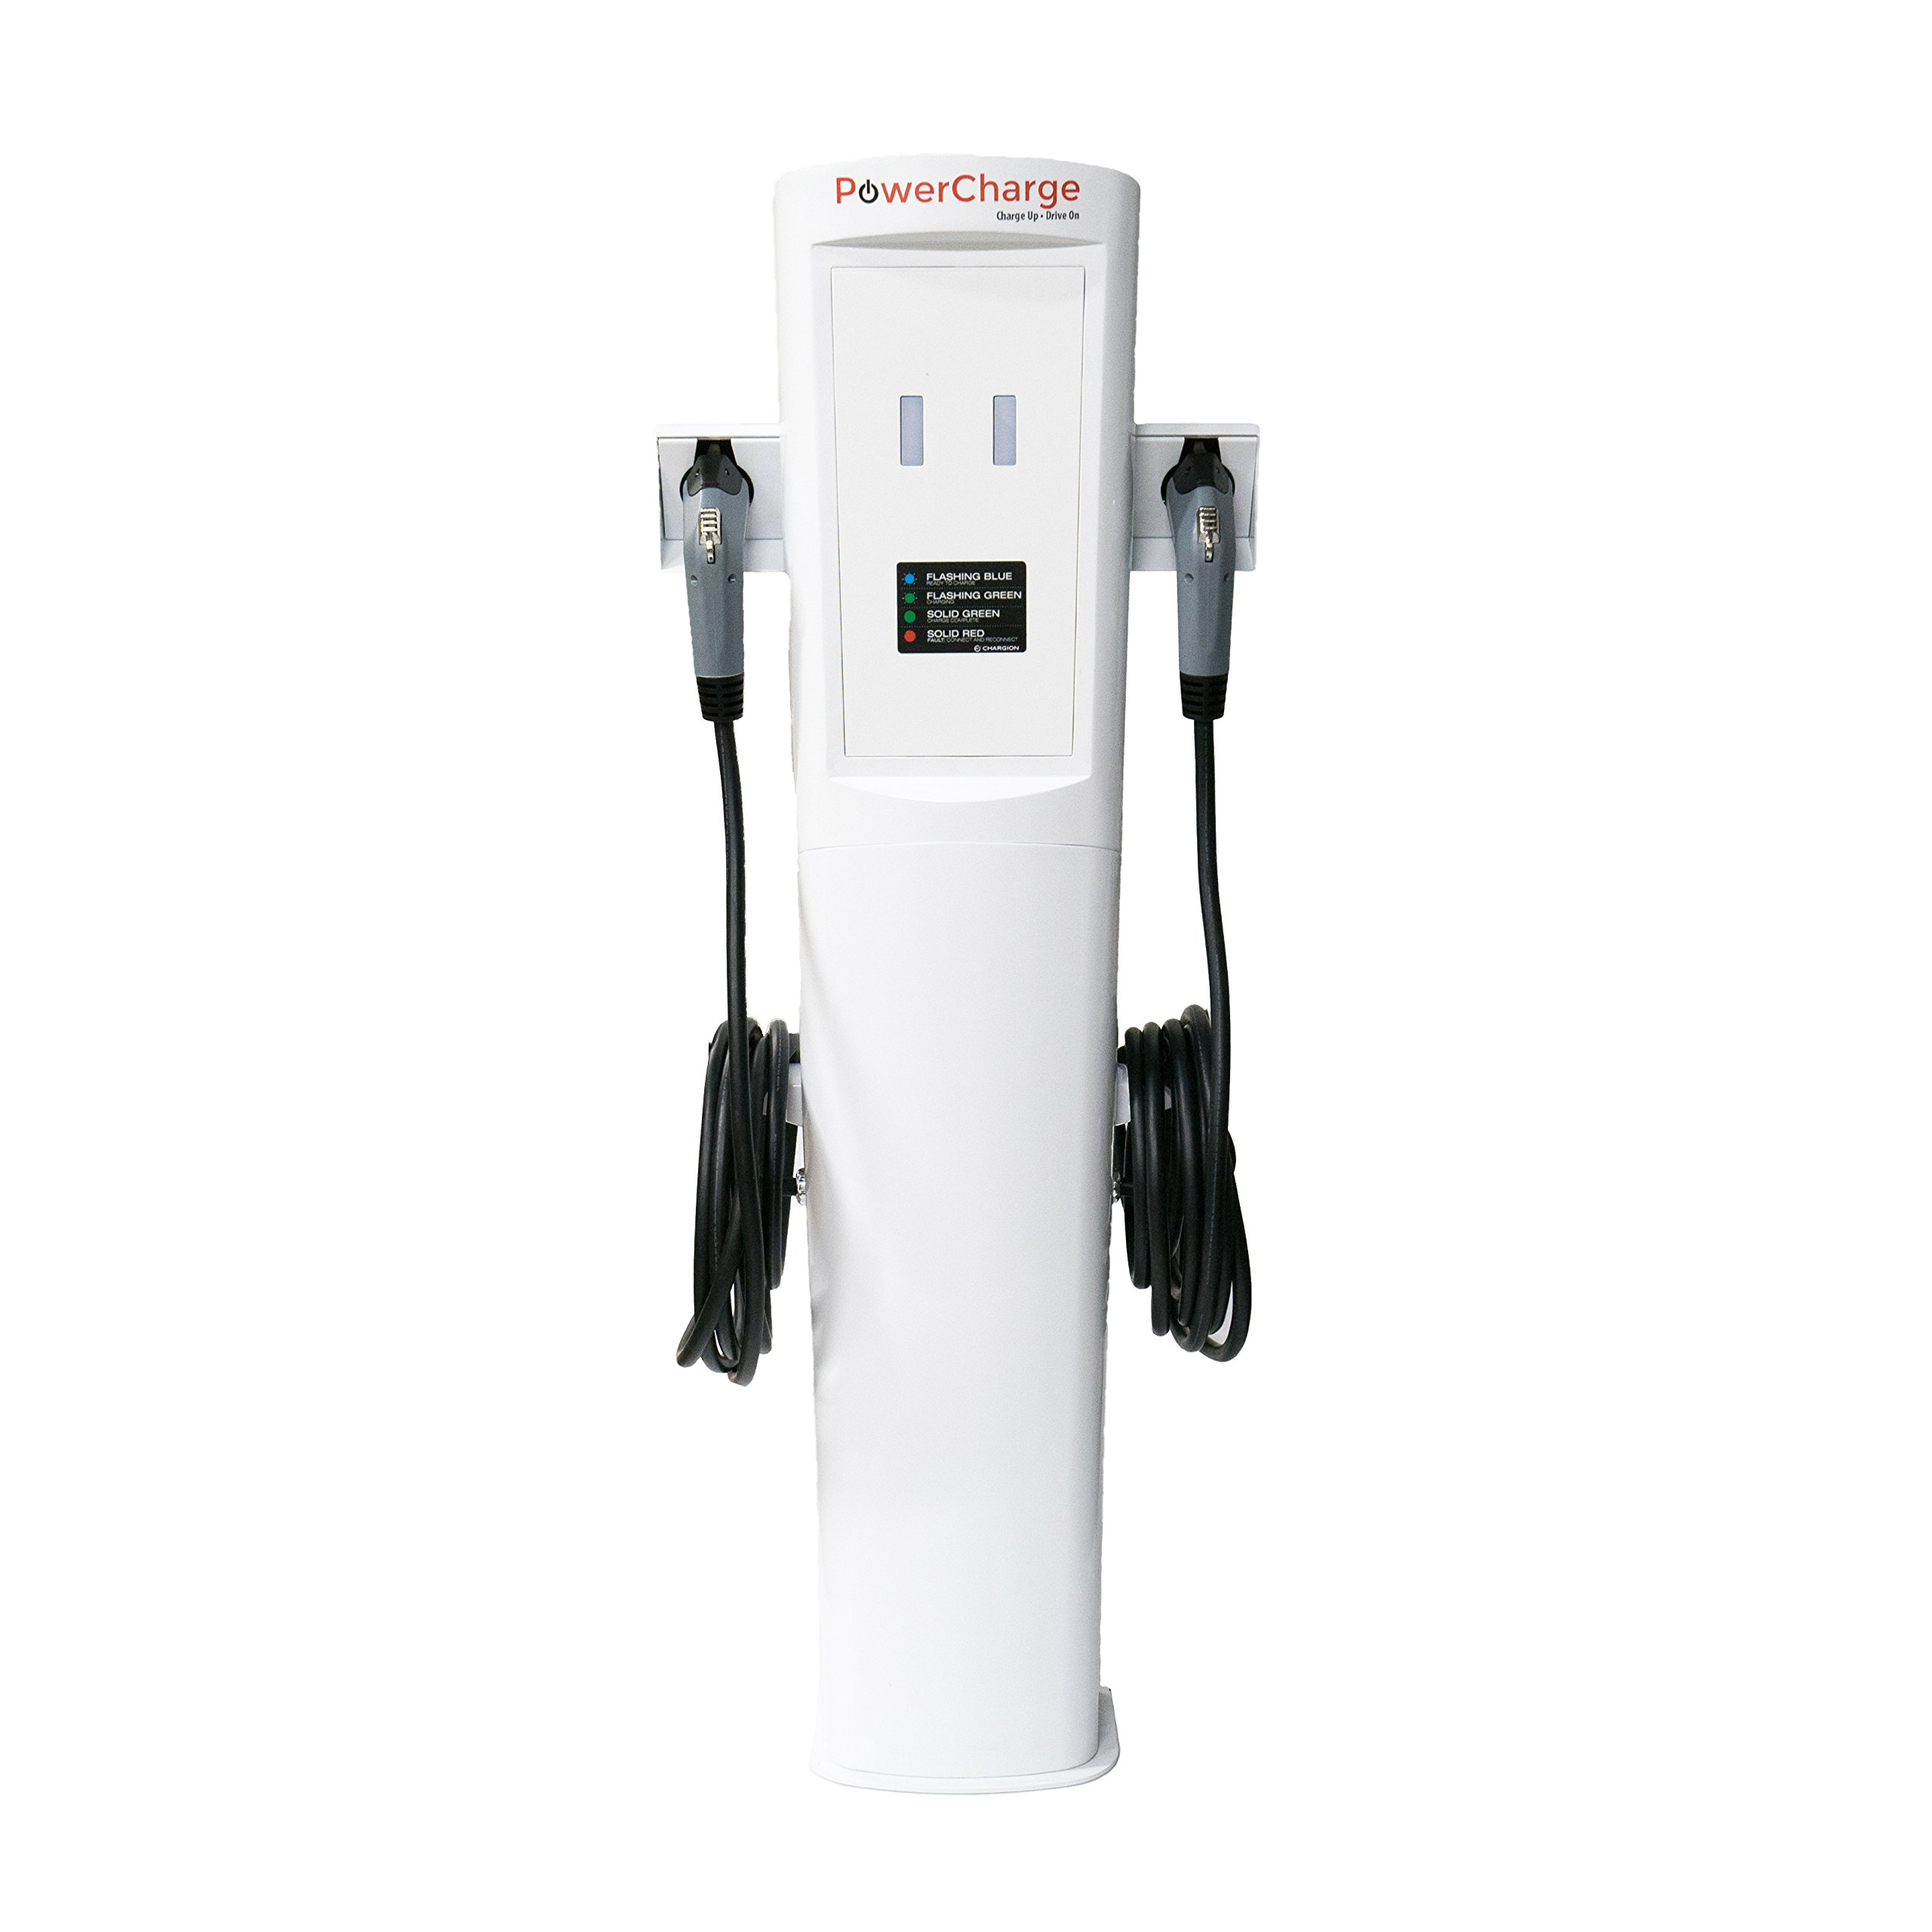 PowerCharge P30DP Commercial EV Charger